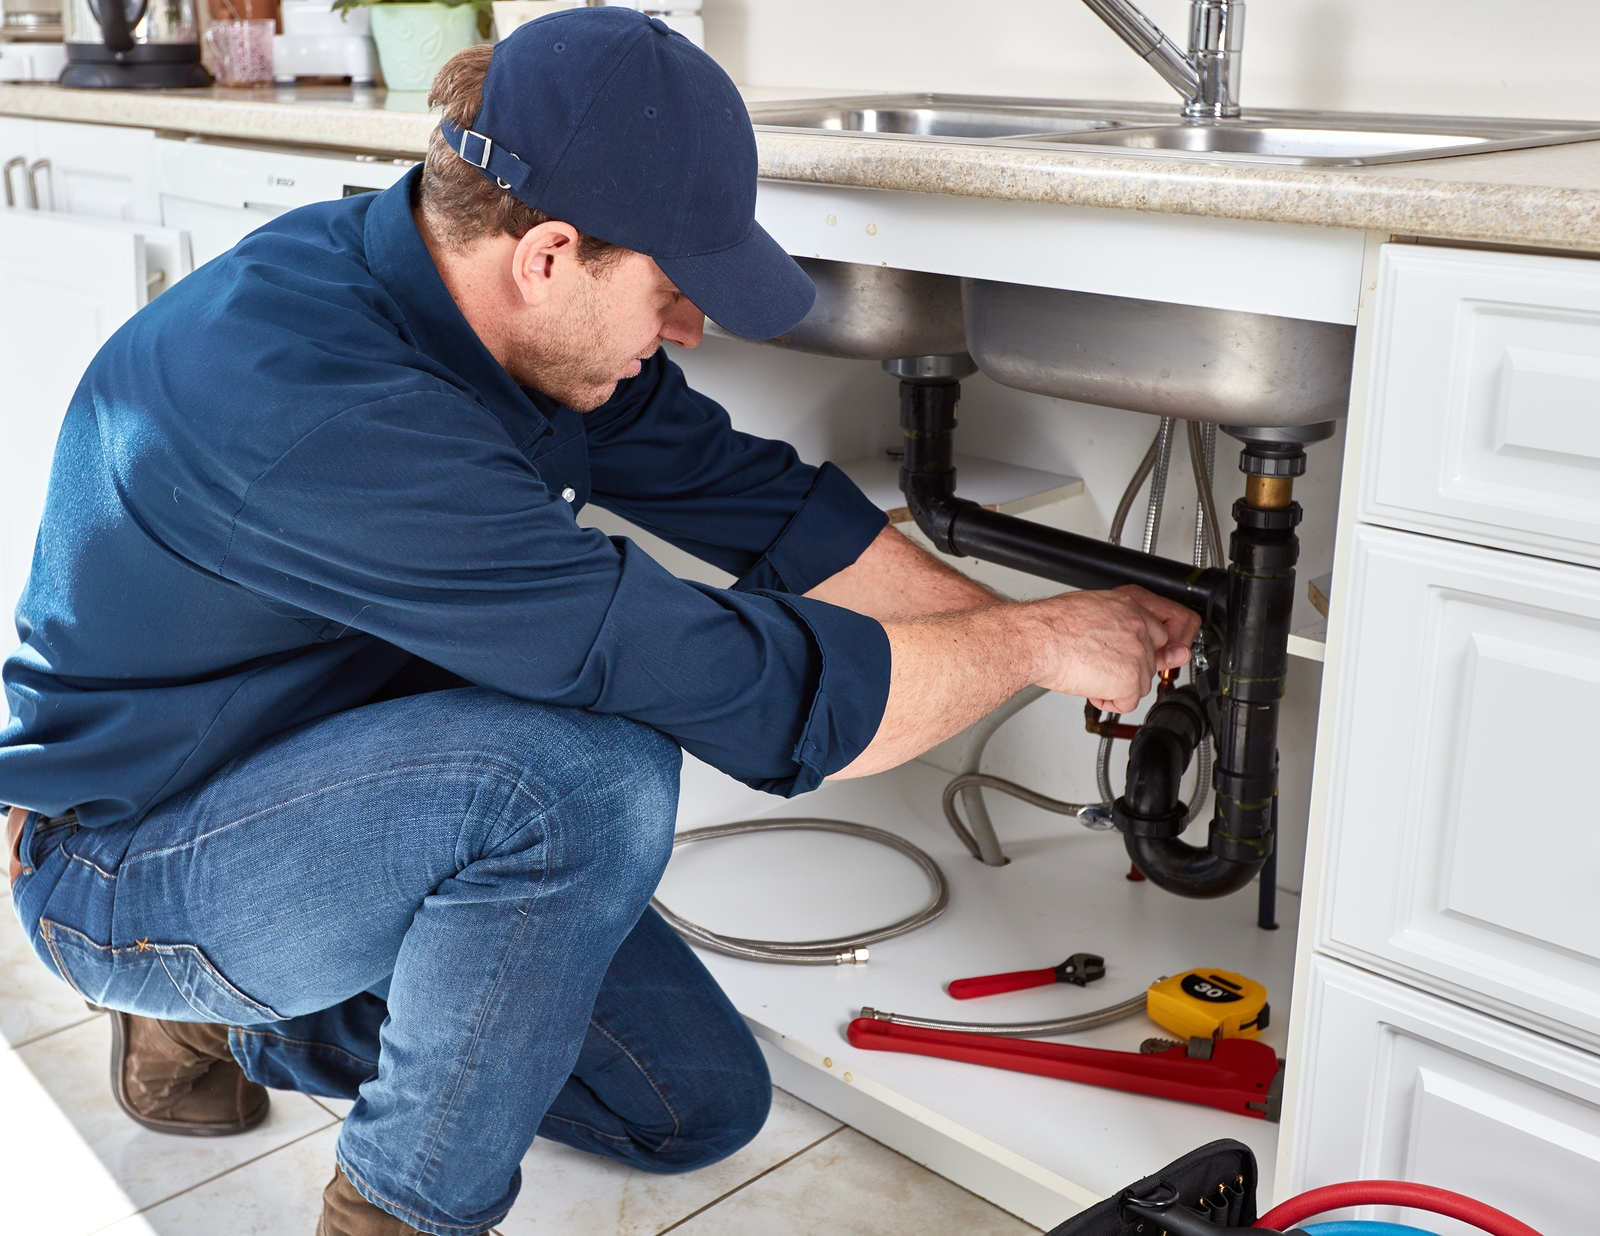 Find a Residential Plumber in White Bluff, Dickson or Franklin, TN